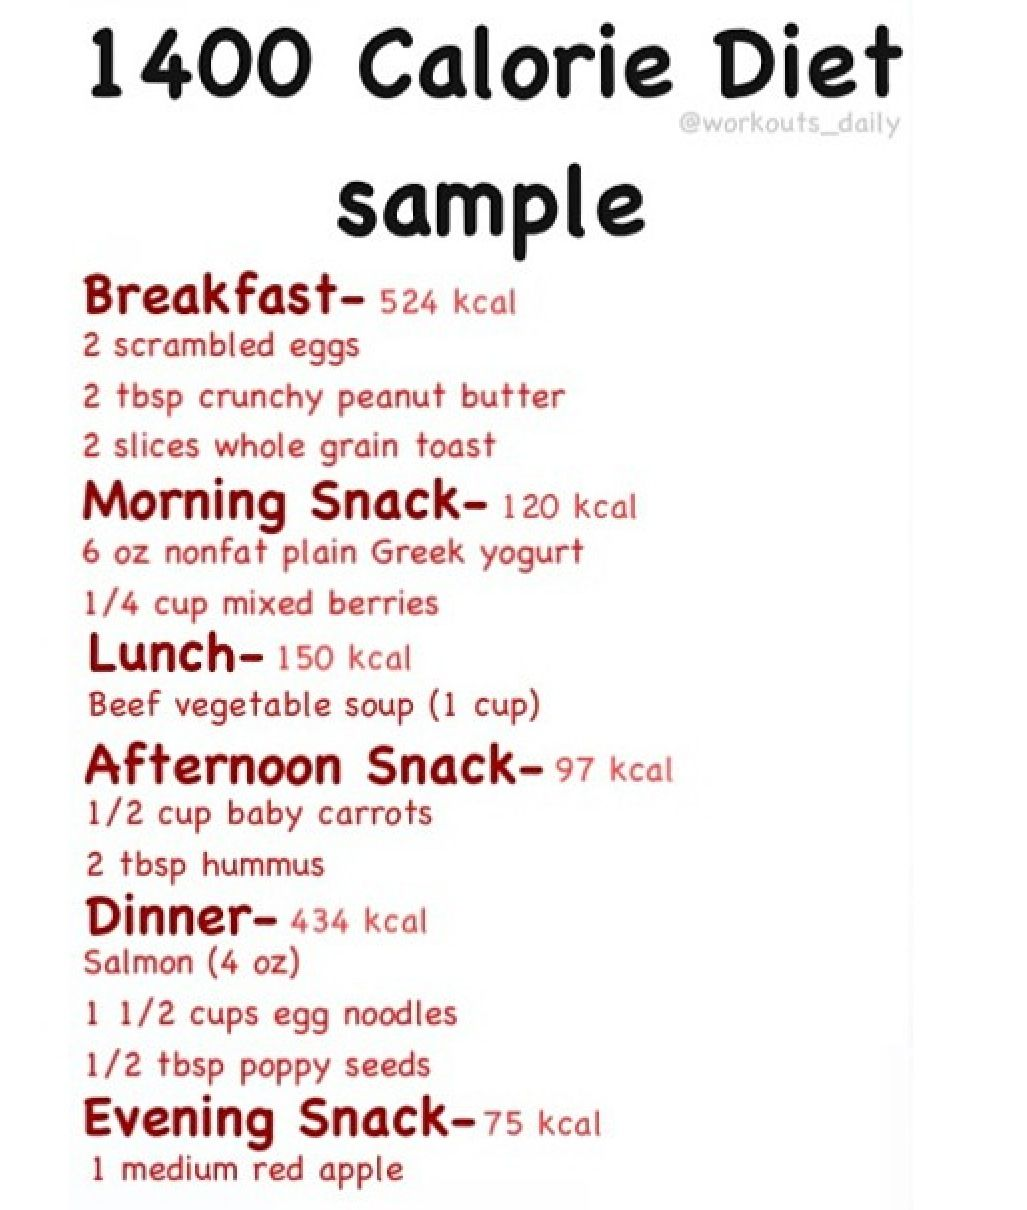 1400 Calorie Diet Sample | 1400 calorie diet, 1500 calorie ...